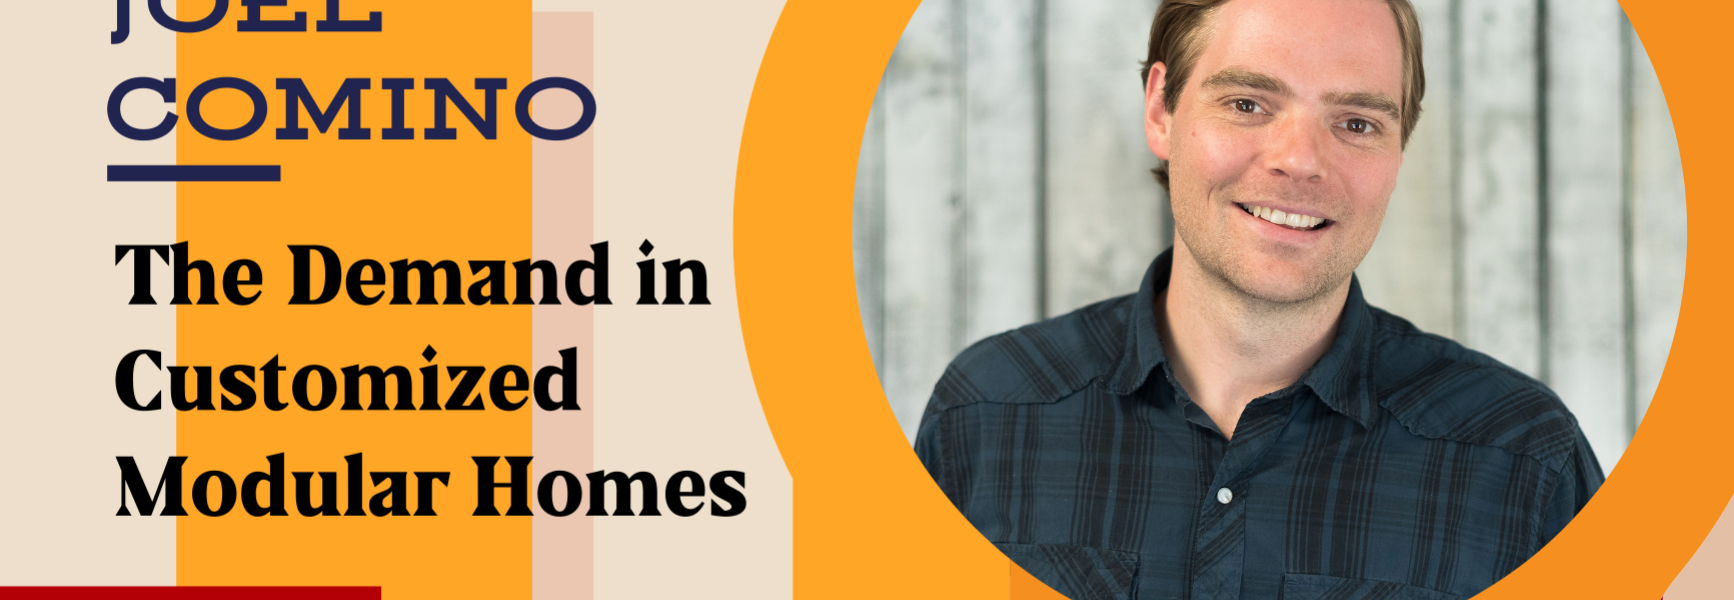 The Demand in Customized Modular Homes with Joel Comino